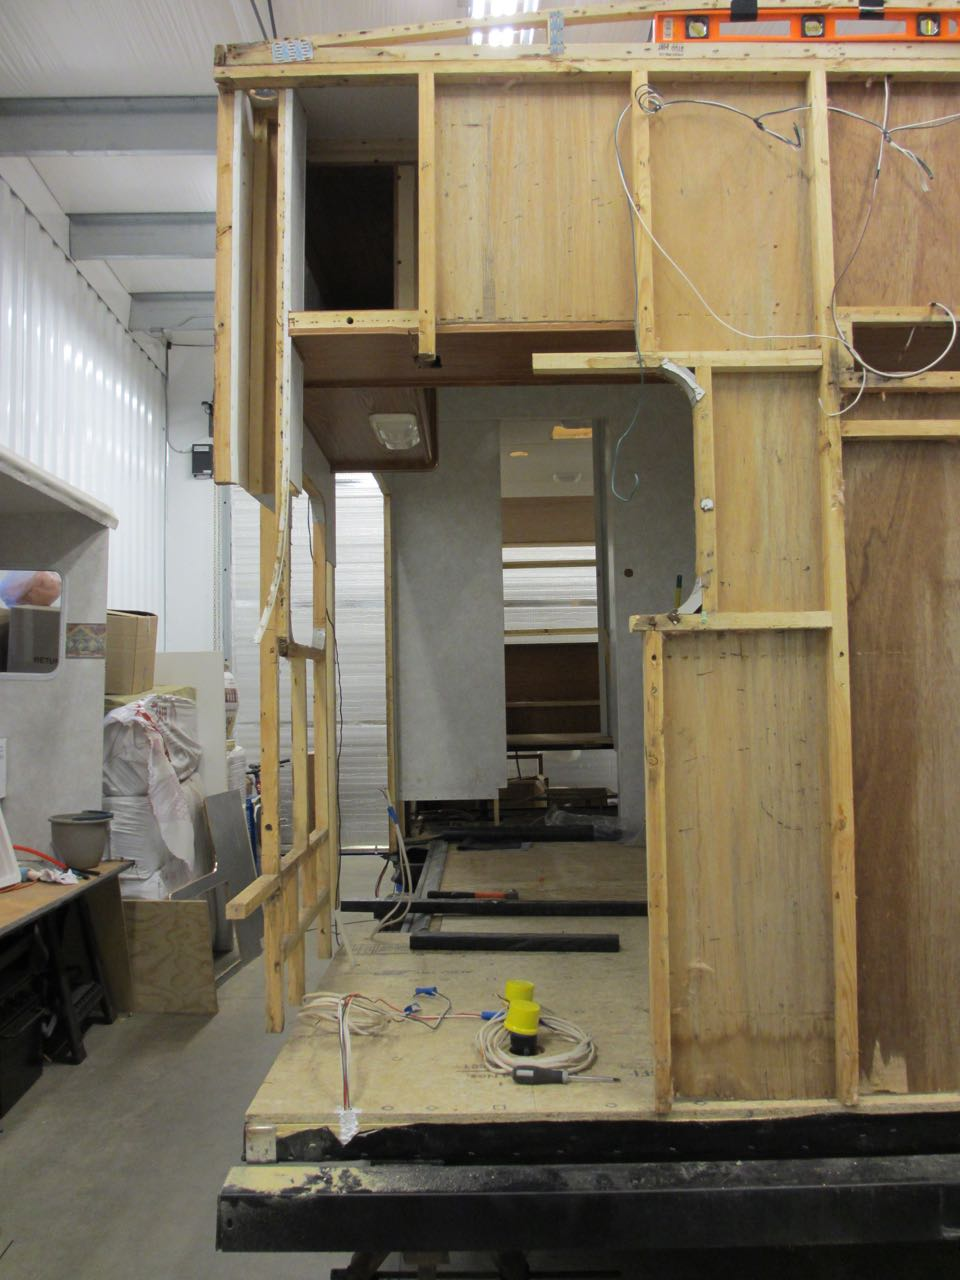 The most outer stud was removed and so were the beams for the kitchen window.